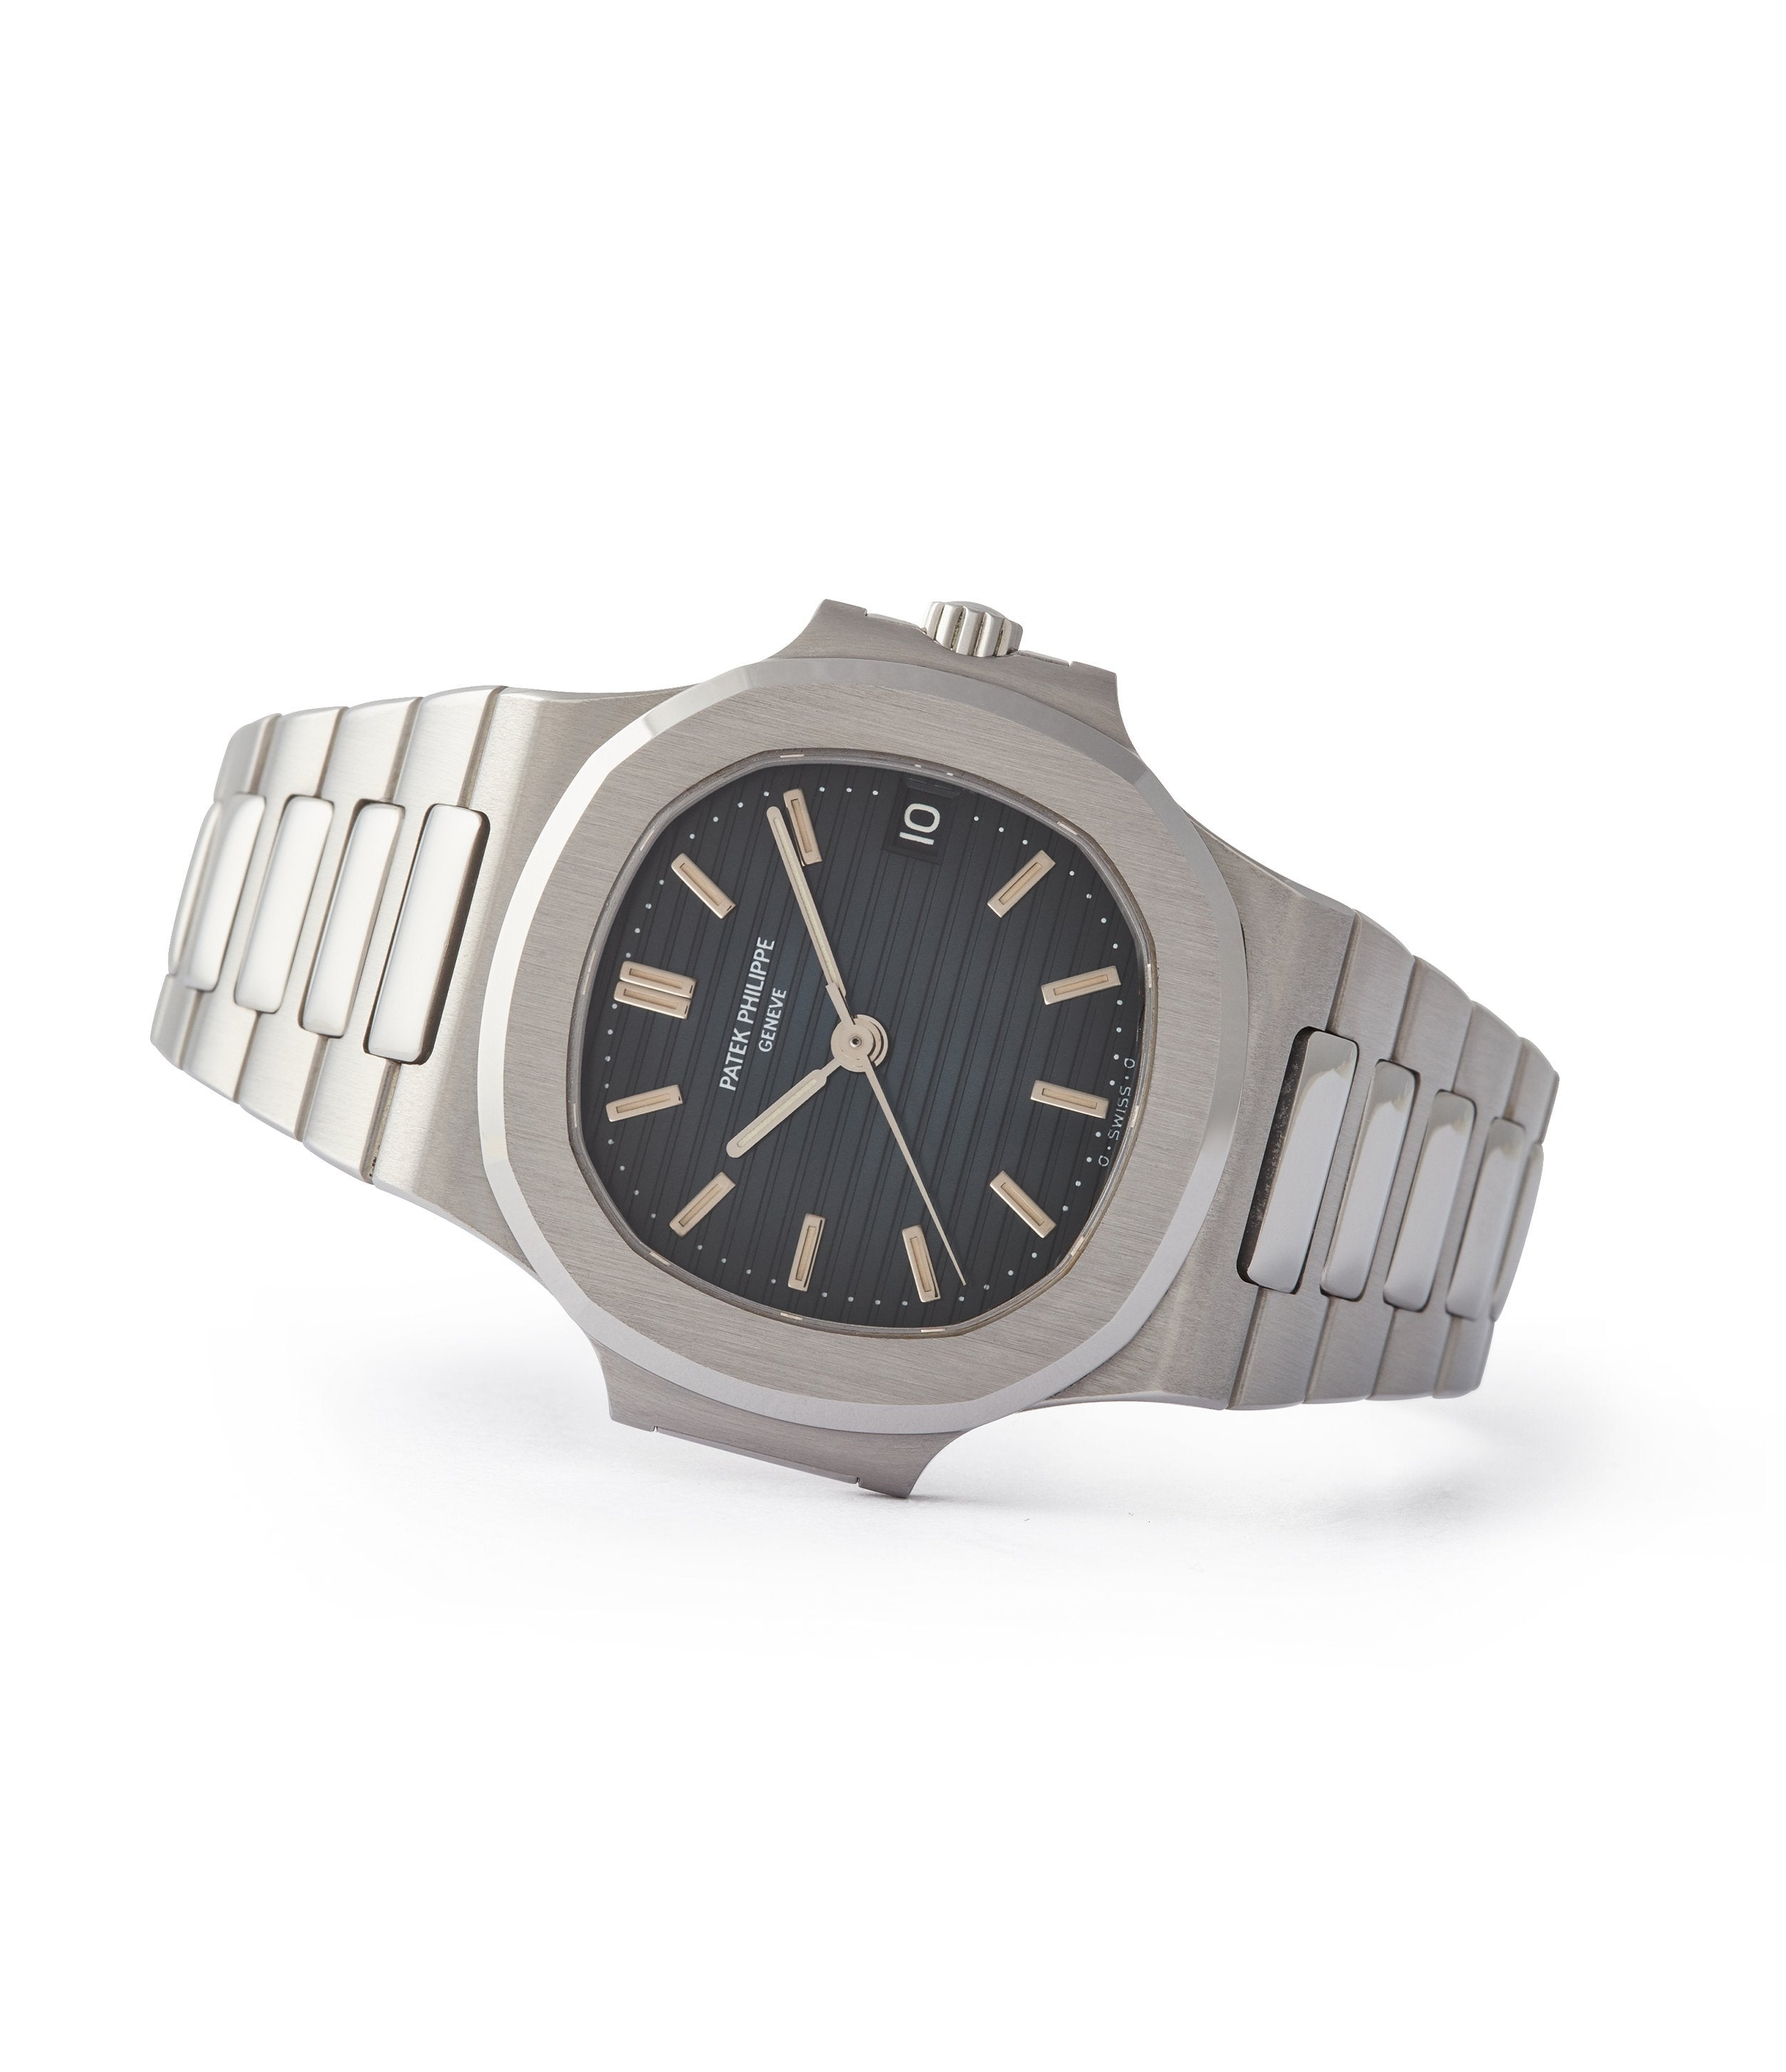 side-shot rare black date disc Patek Philippe Nautilus 3800/1 steel luxury sports watch for sale online A Collected Man London UK specialist of rare watches